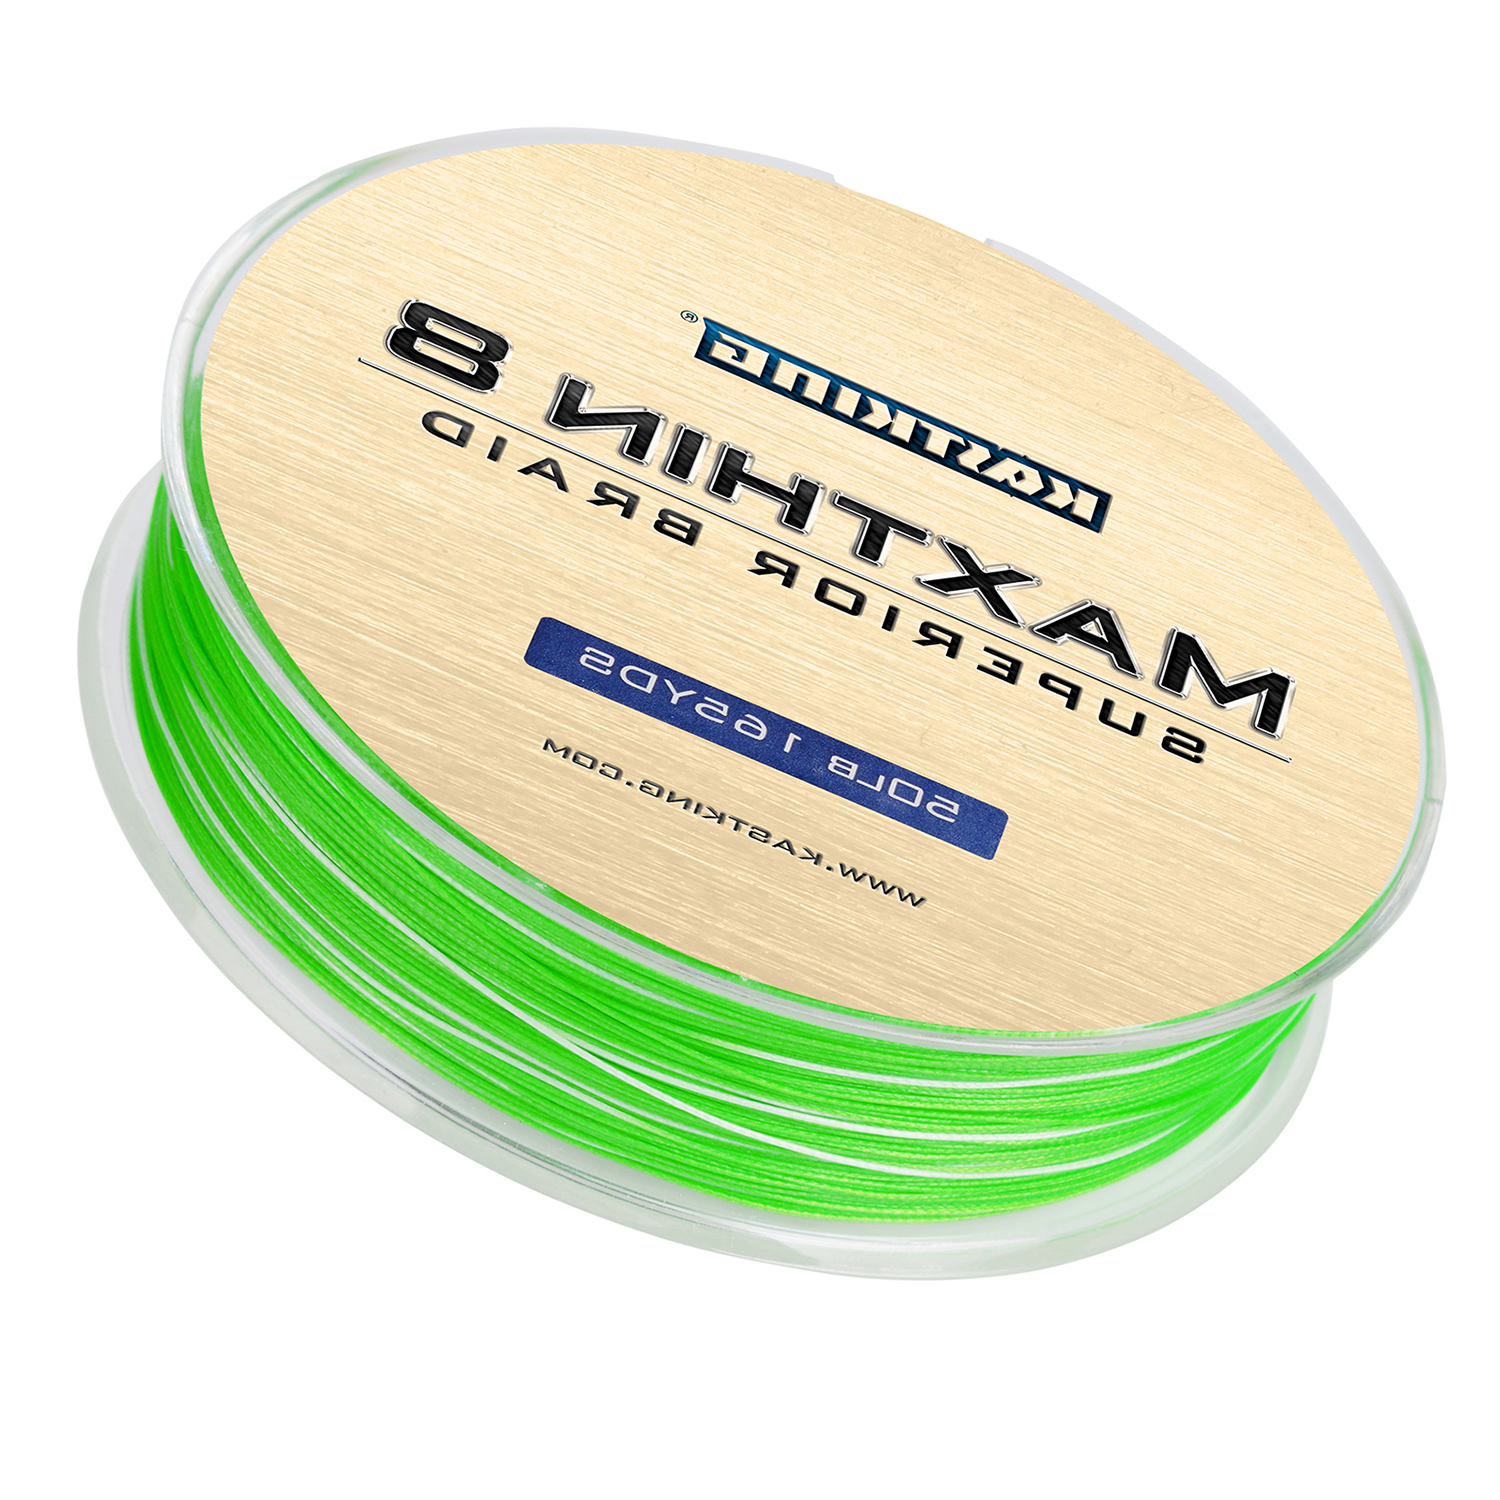 KastKing Maxthin8 Braid Fishing Line